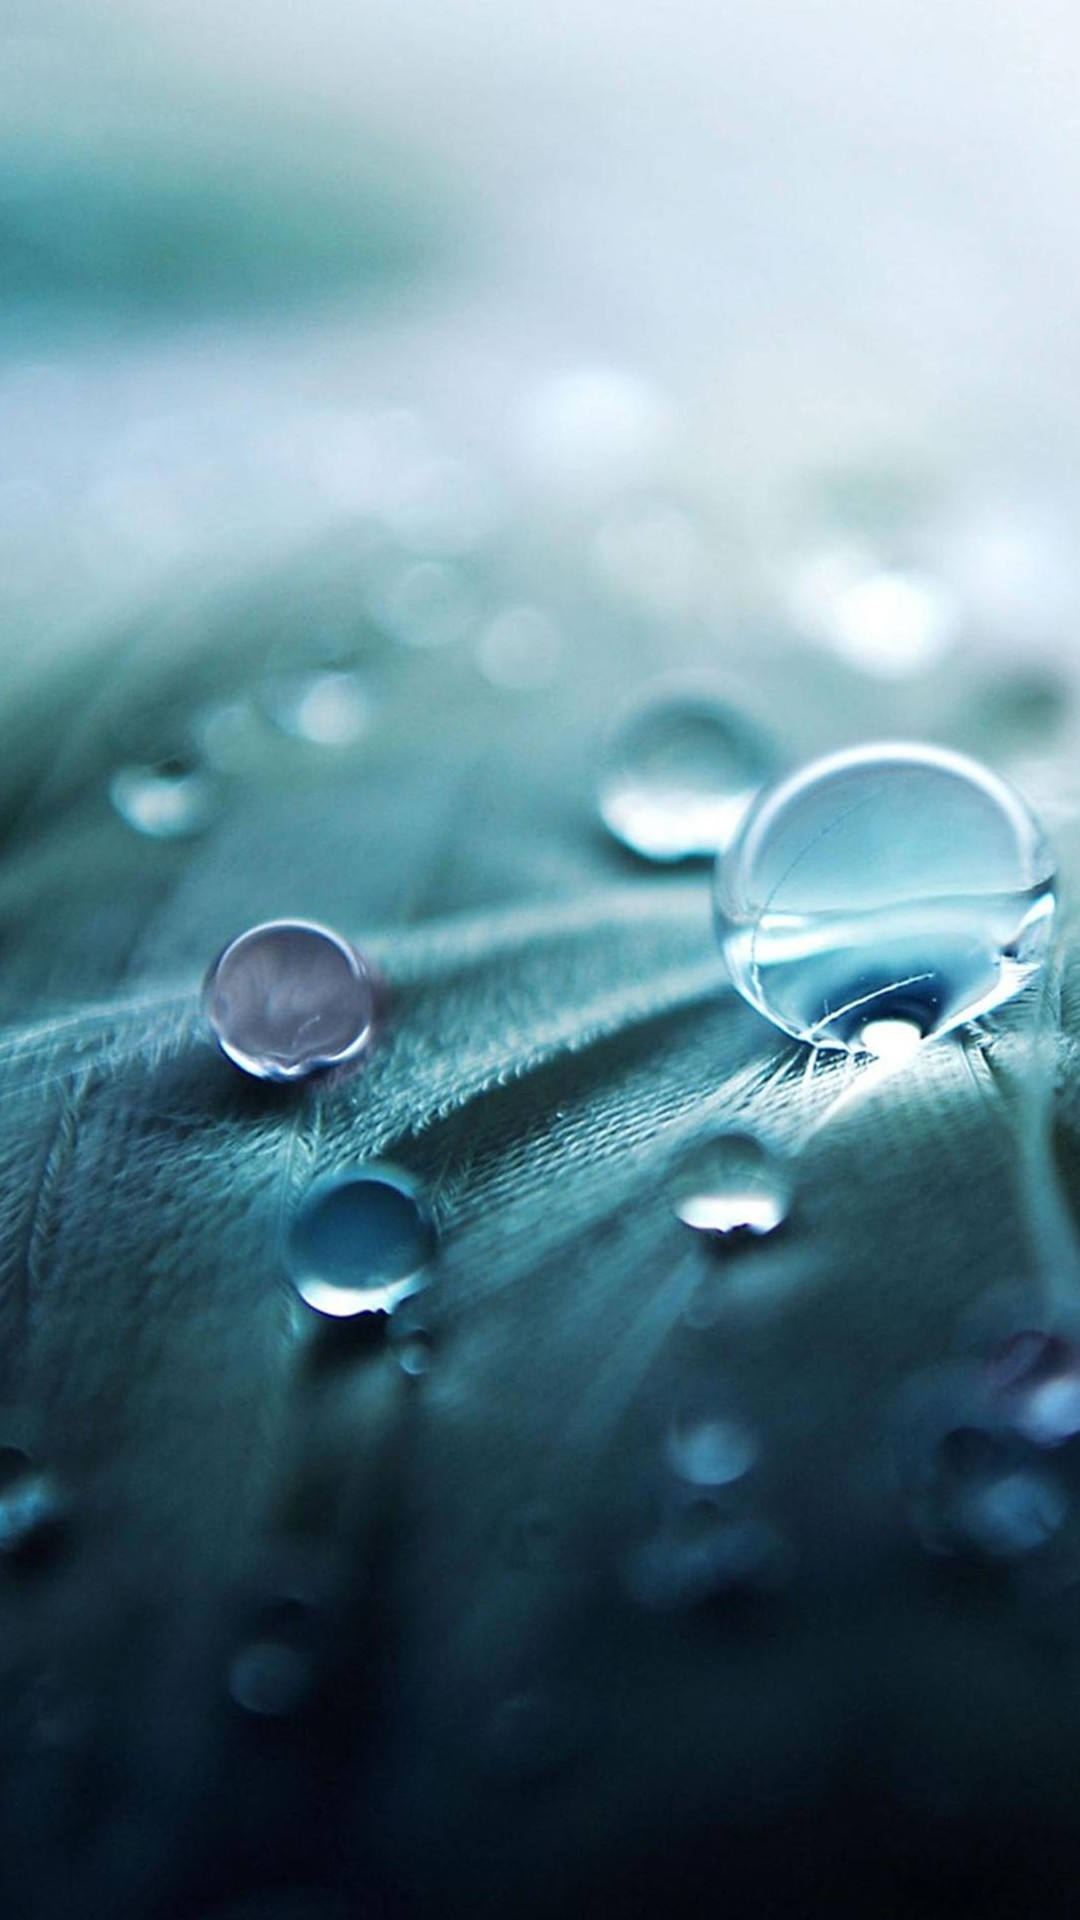 Water Droplets iPhone 6 and iPhone 6 Plus HD Wallpaper